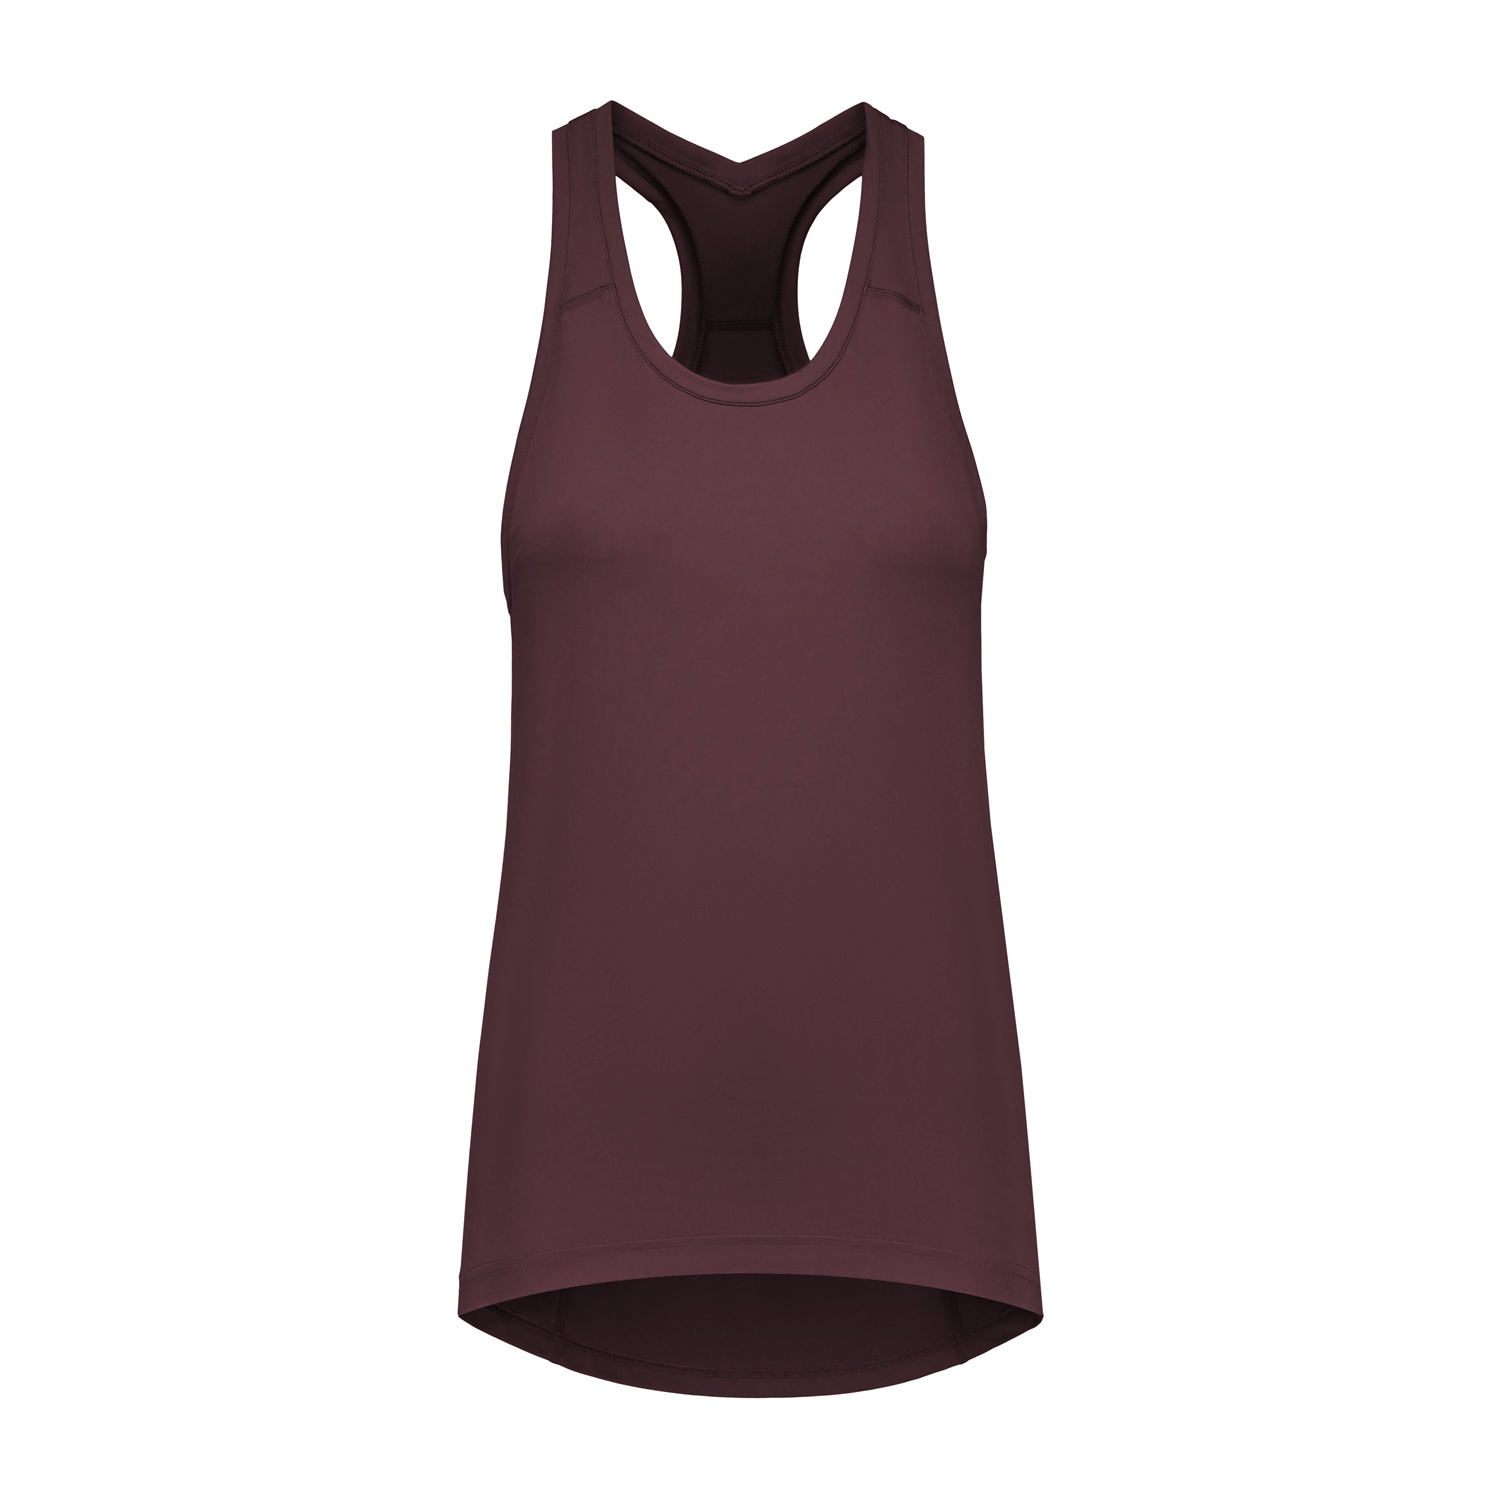 A-line sport and yoga top